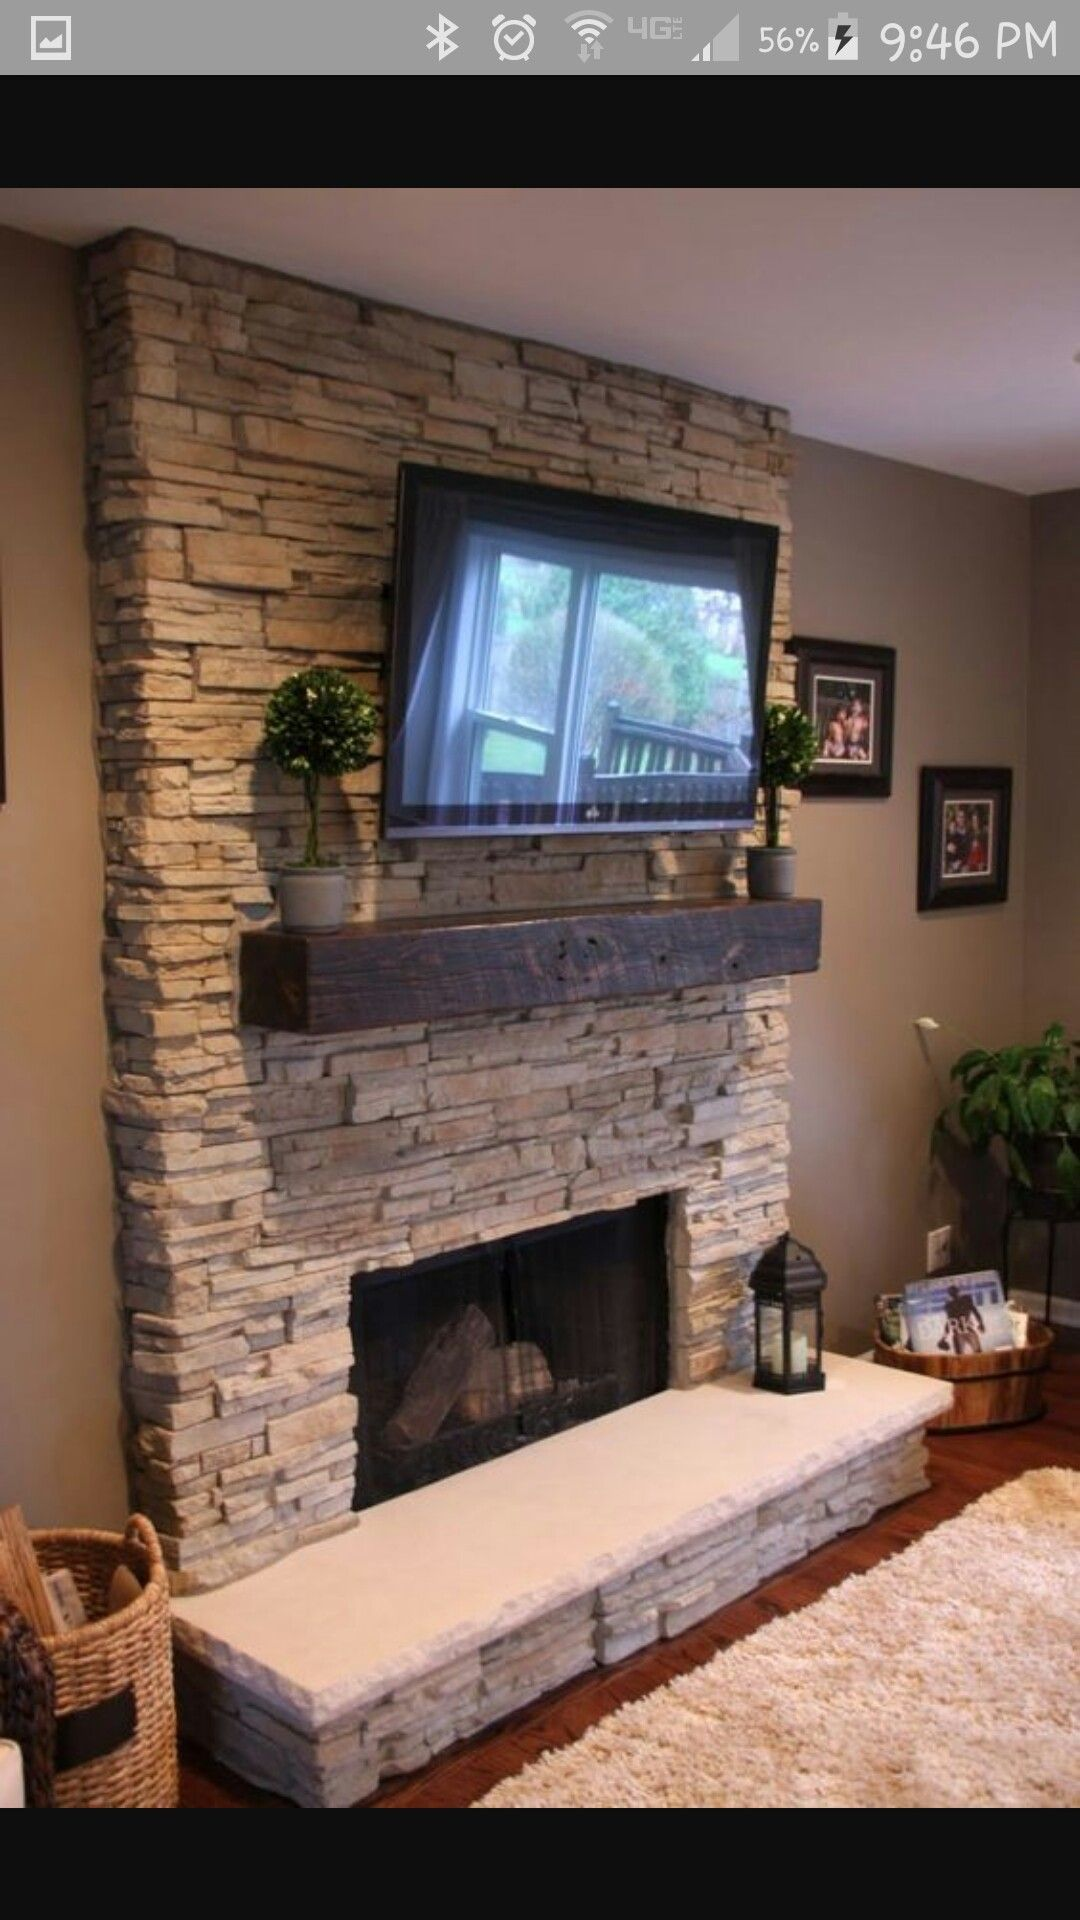 Pin by Diane Harrison on Home | Stone fireplace designs ...